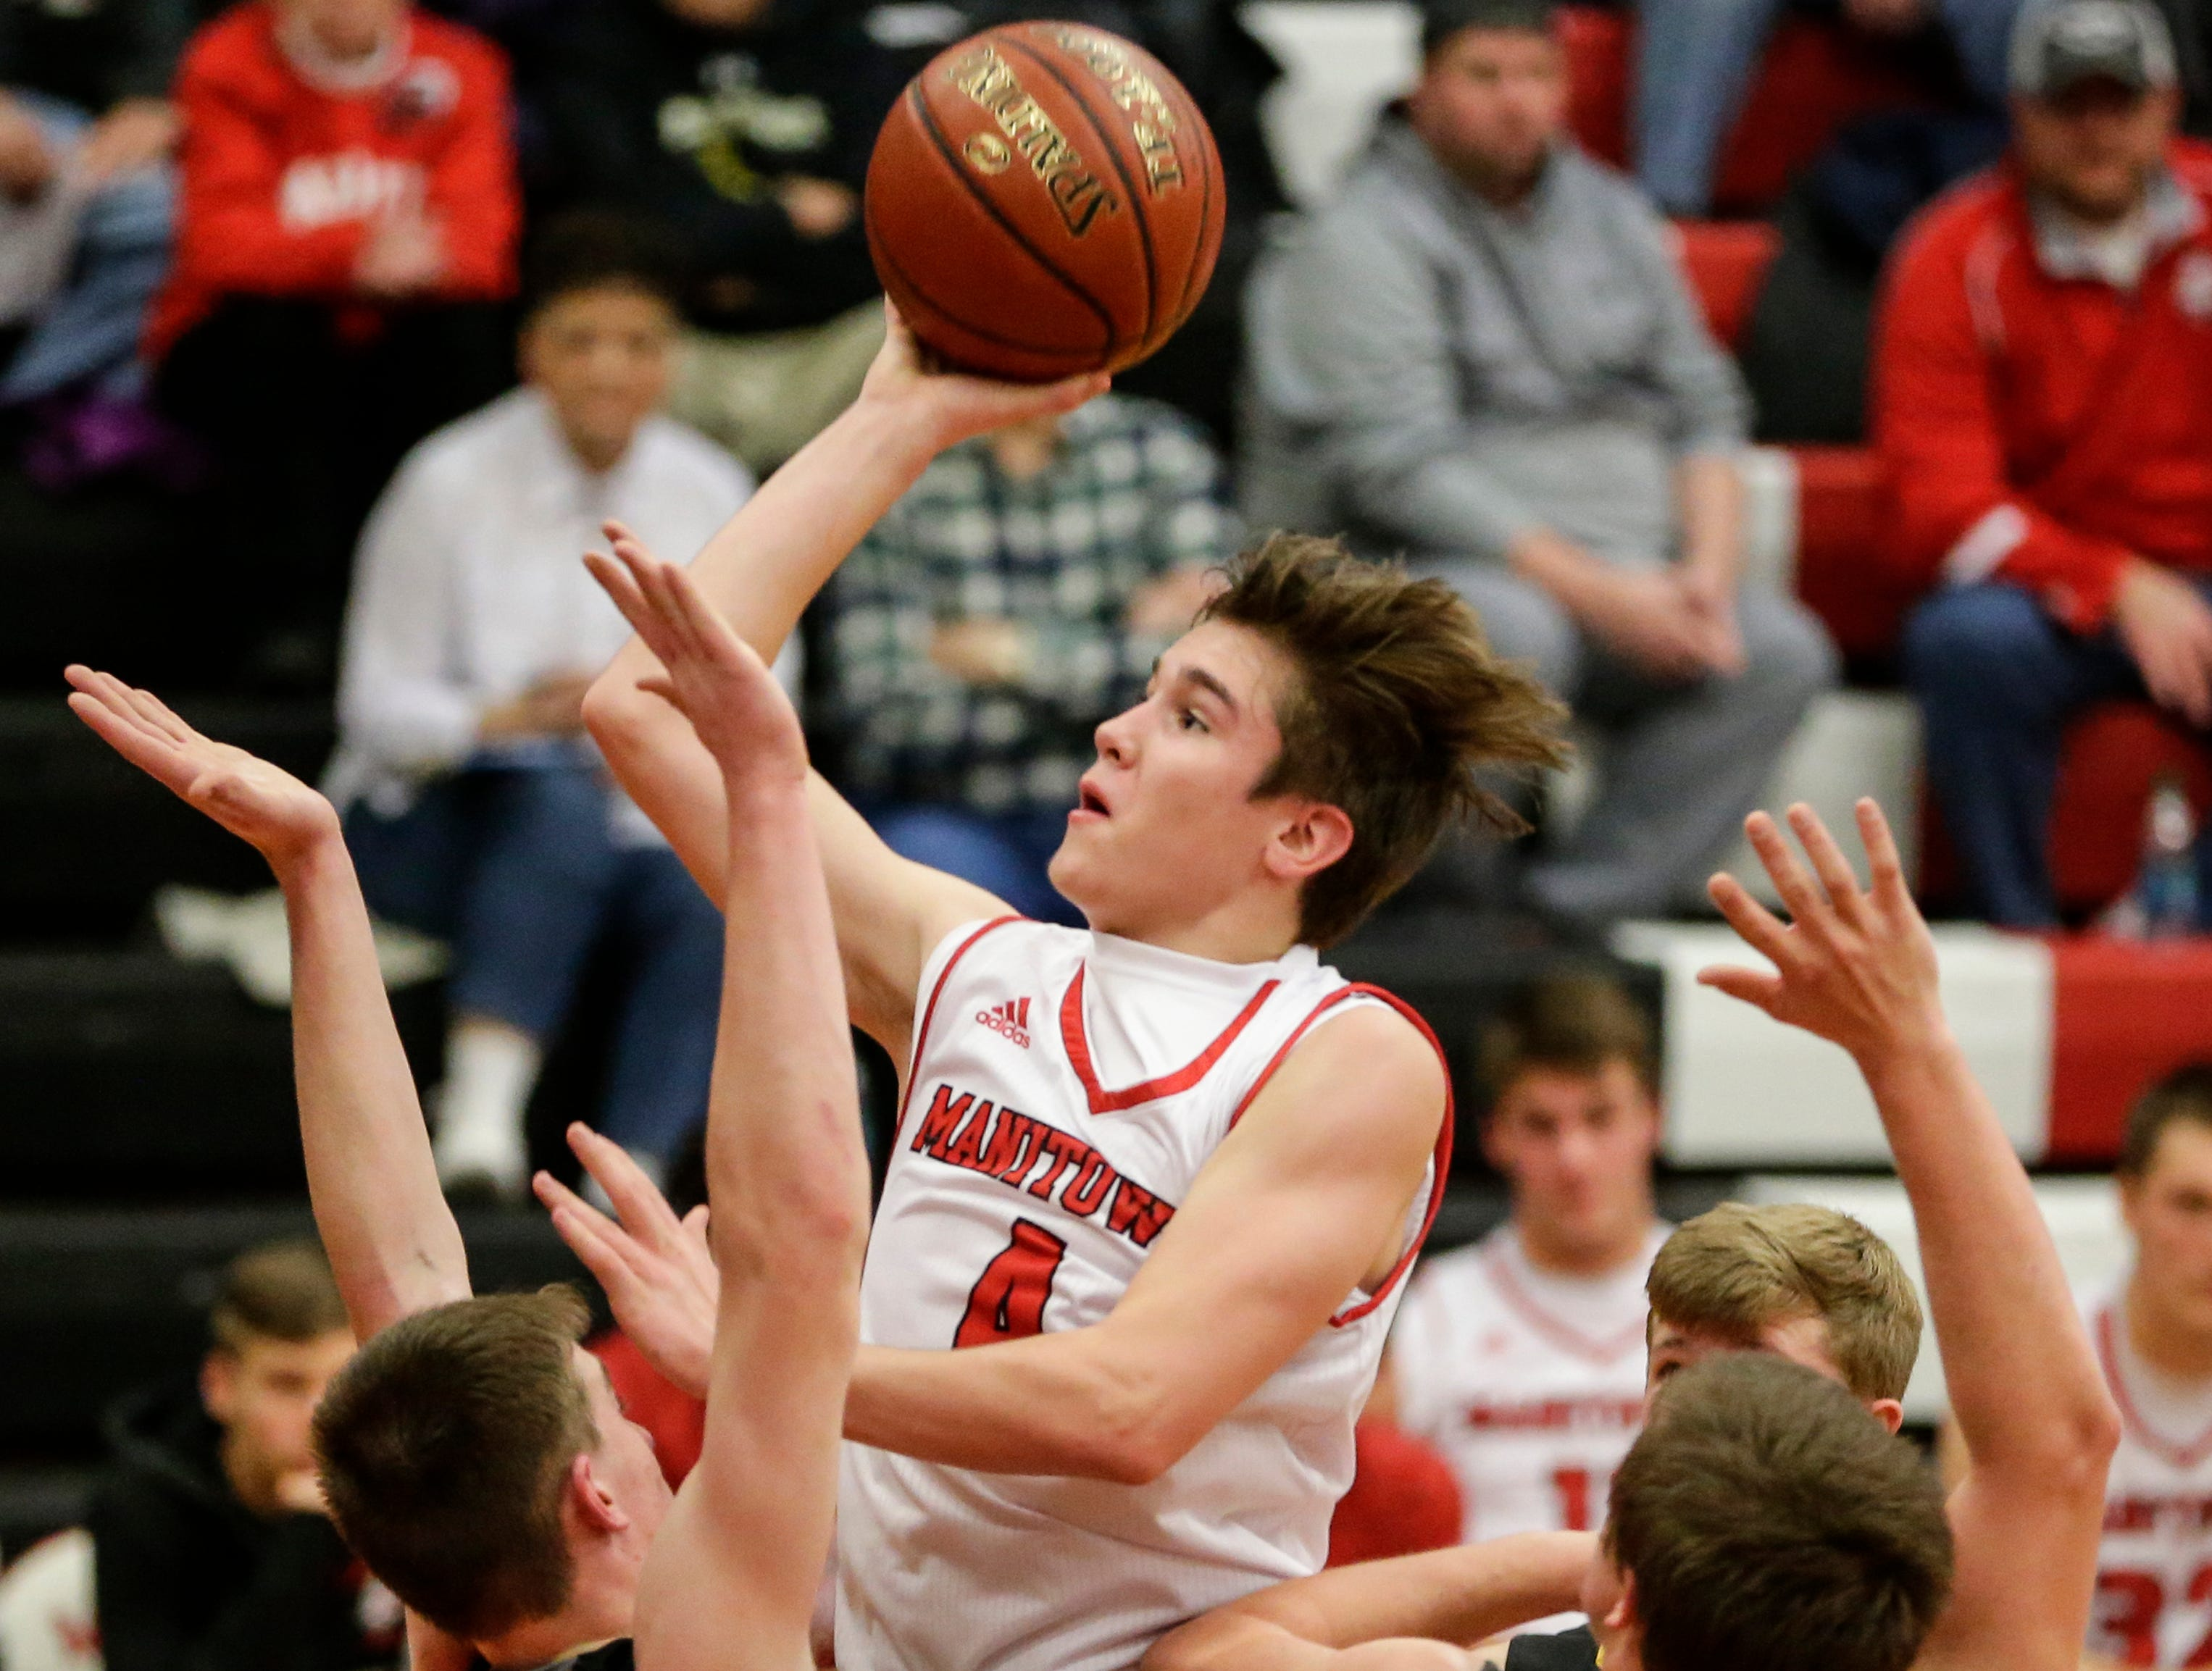 Manitowoc Lincoln's Mason Dopirak drives down the lane for two against Green Bay Preble during boys FRCC basketball at Manitowoc Lincoln High School Friday, December 21, 2018, in Manitowoc, Wis. Joshua Clark/USA TODAY NETWORK-Wisconsin